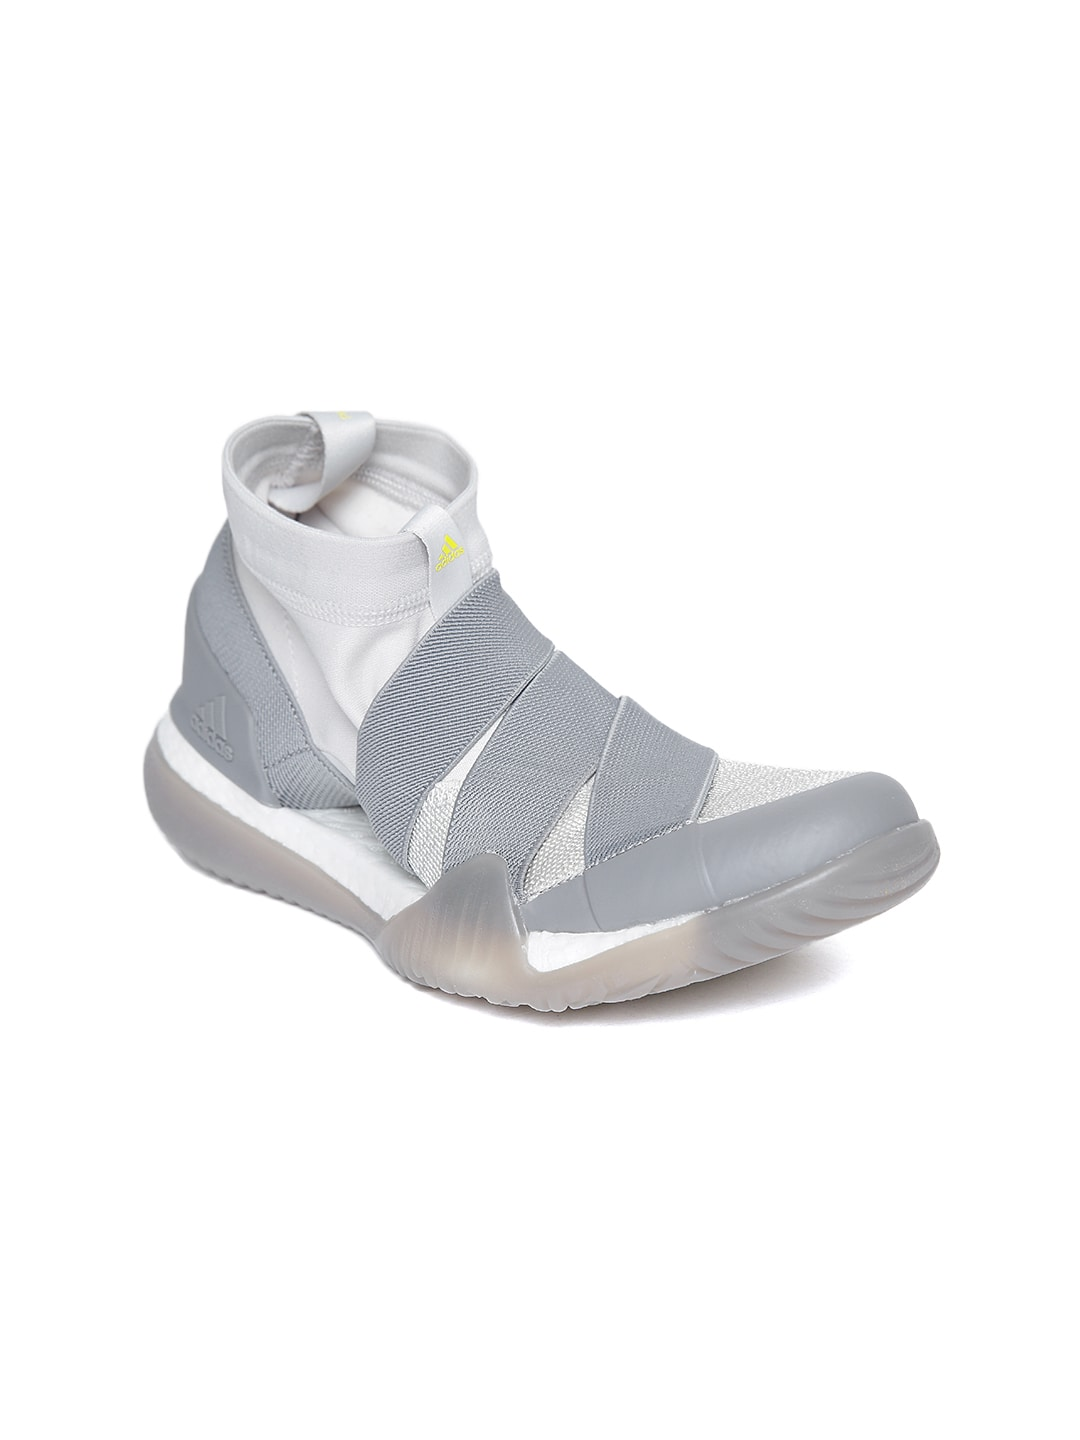 2993ea685ef8d Adidas Shoes - Buy Adidas Shoes for Men   Women Online - Myntra